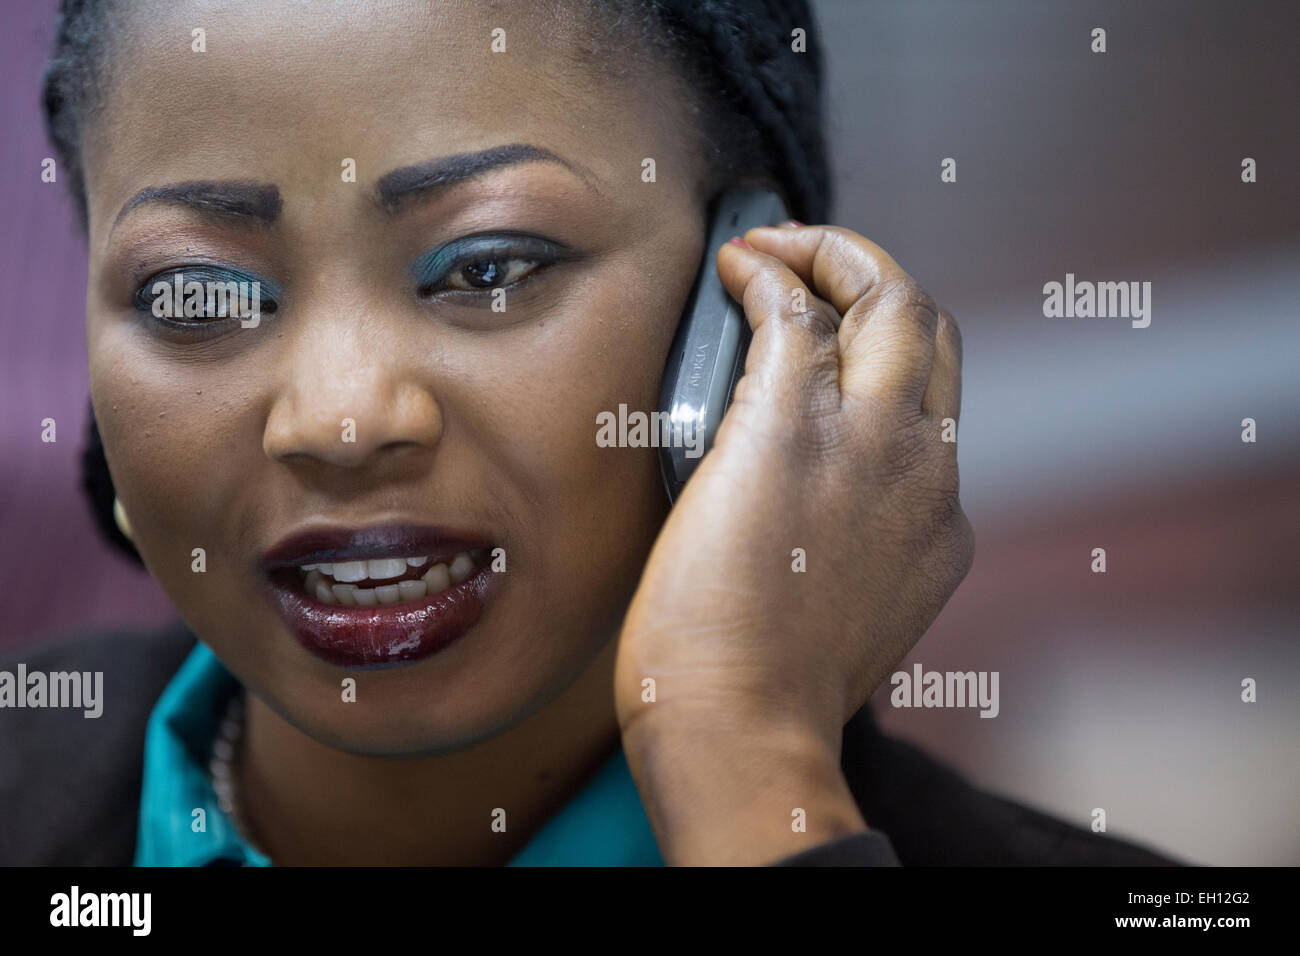 Lagos, Nigeria; A young woman on her mobile phone in a city office. - Stock Image